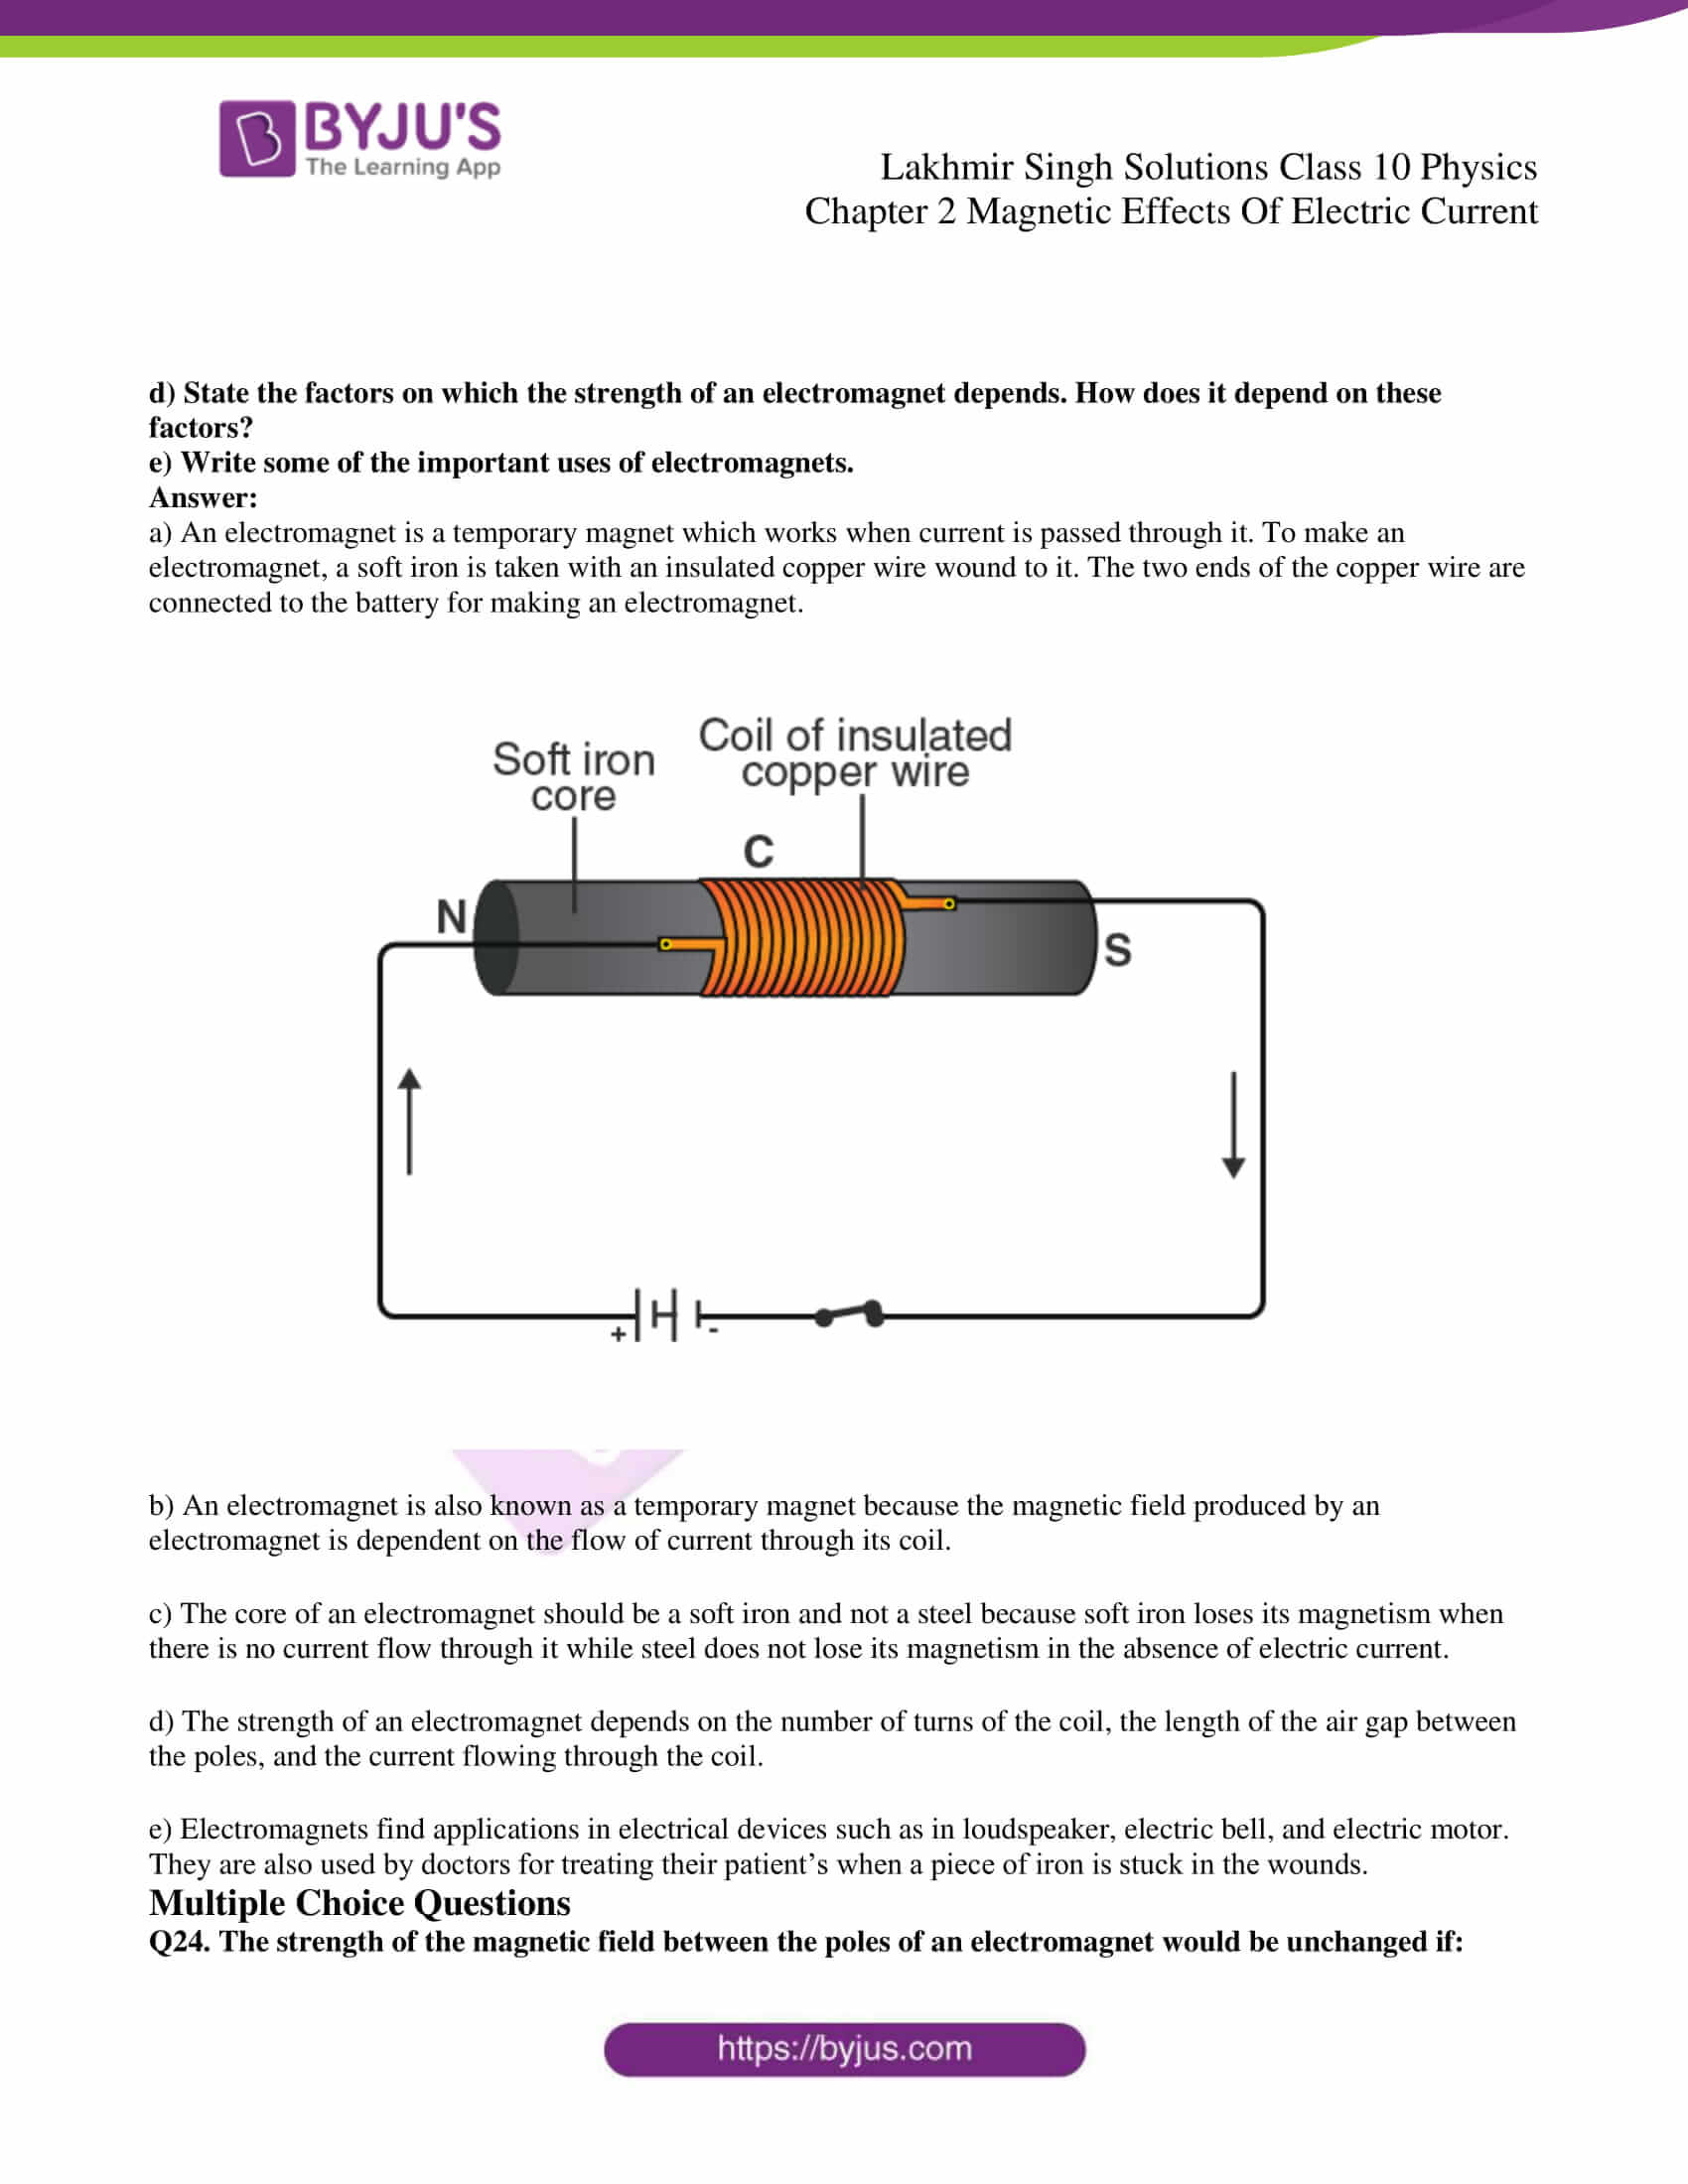 lakhmir singh sol class 10 physics chapter 2 14